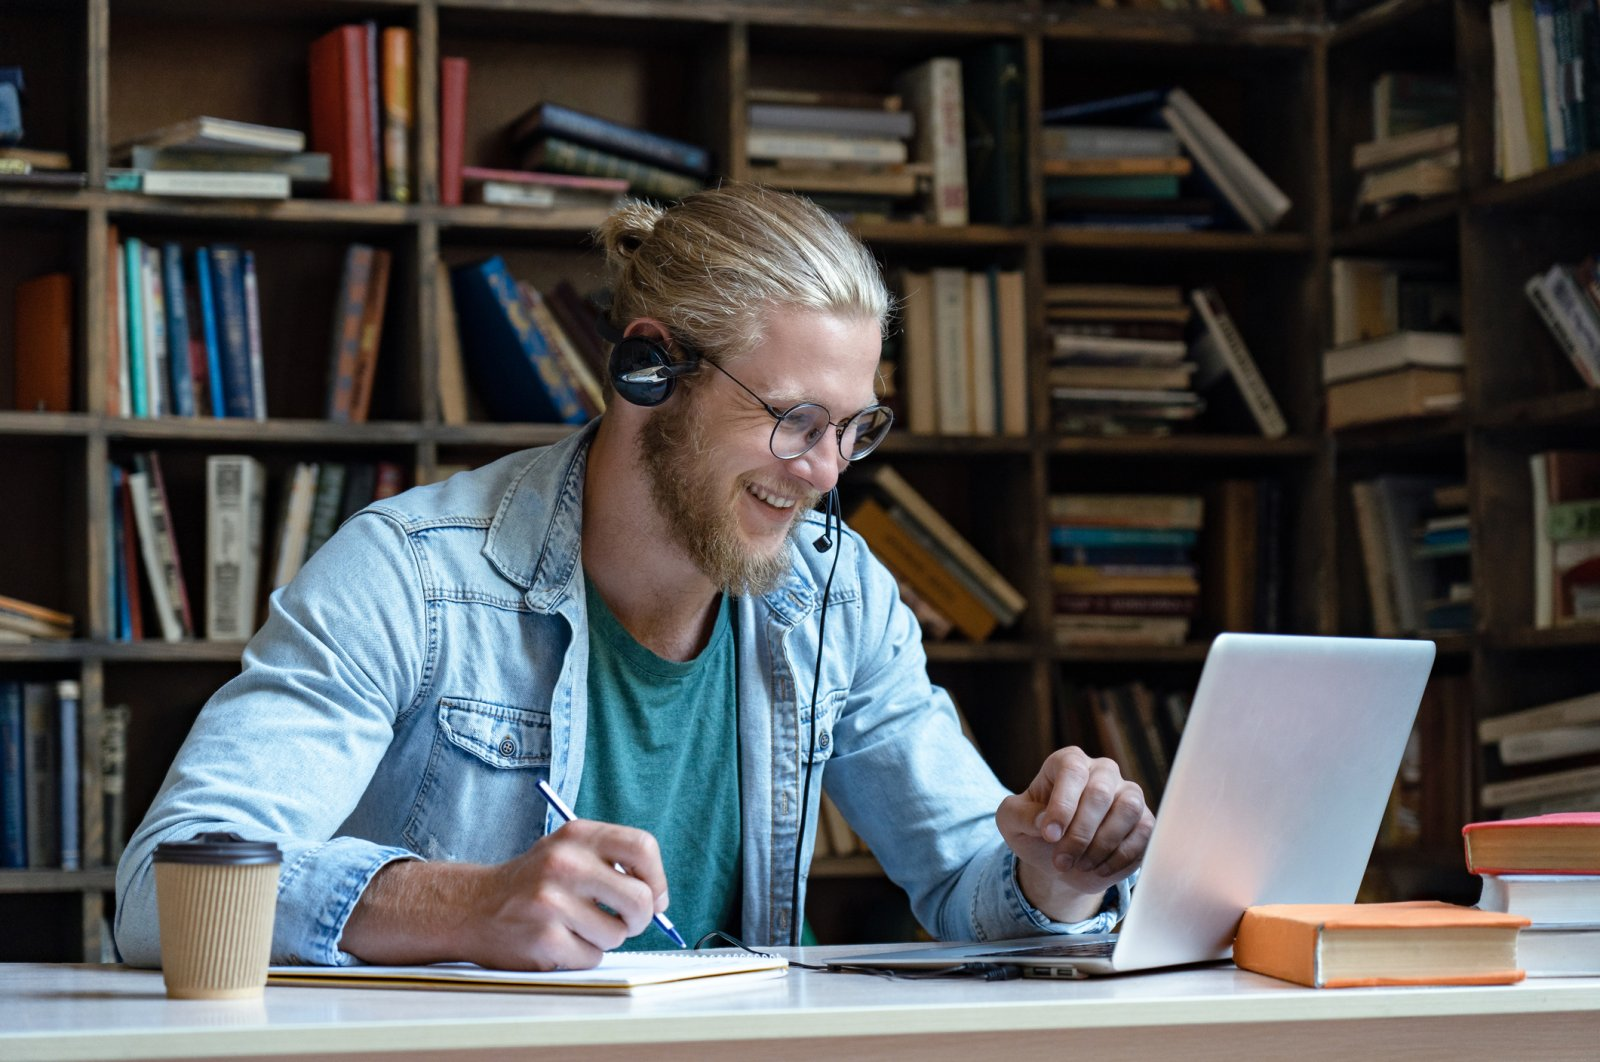 Make use of all those online language learning courses you signed up for while under lockdown. (iStock Photo)